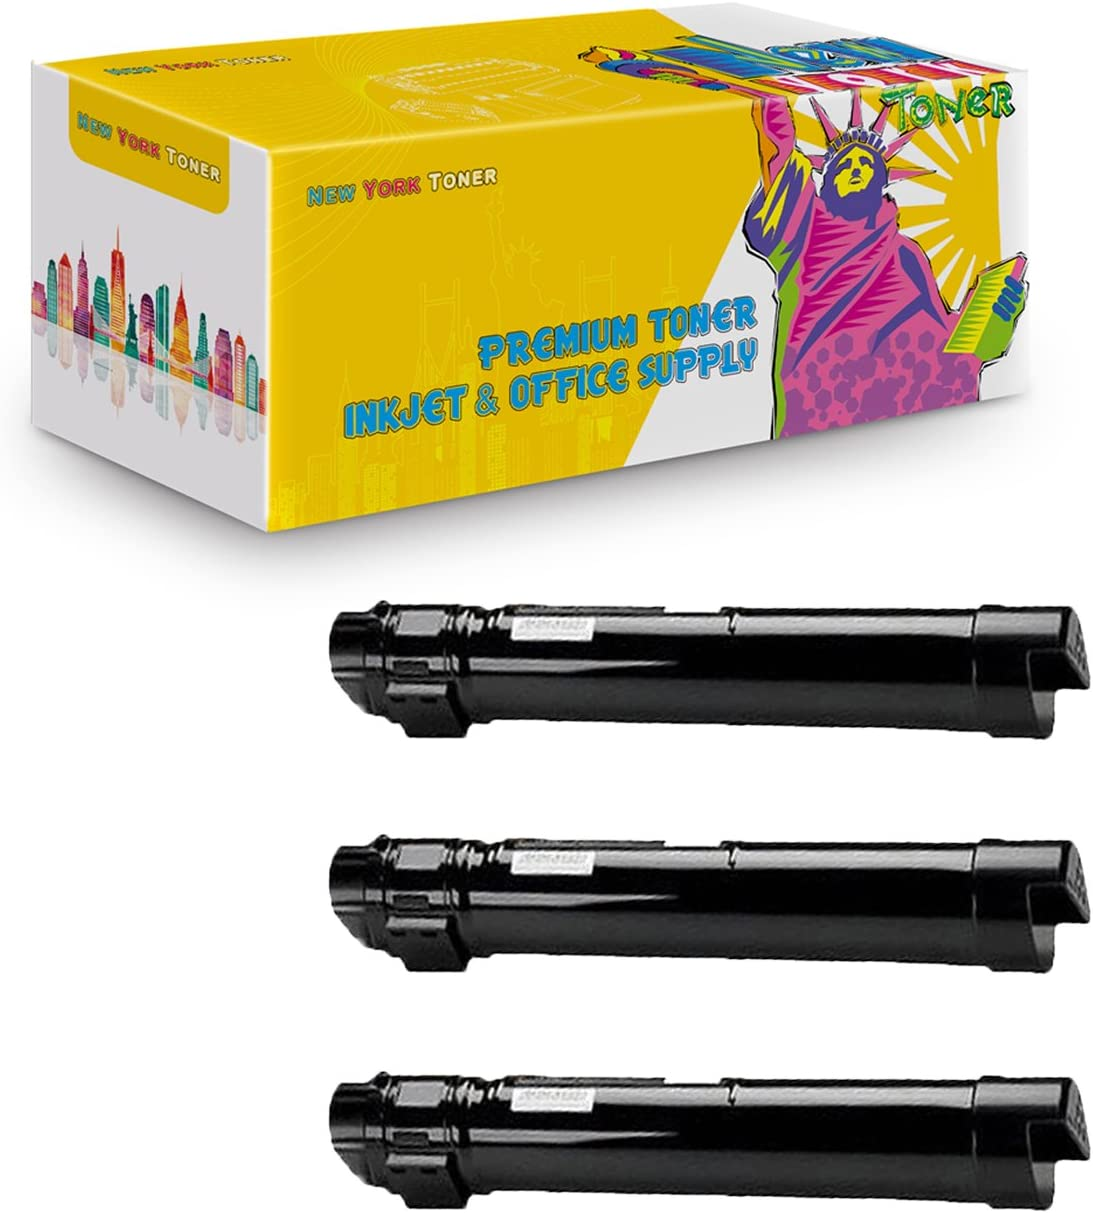 New York TonerTM New Compatible 3 Pack Xerox 106R01439 High Yield Toner for Xerox Phaser Black 7500